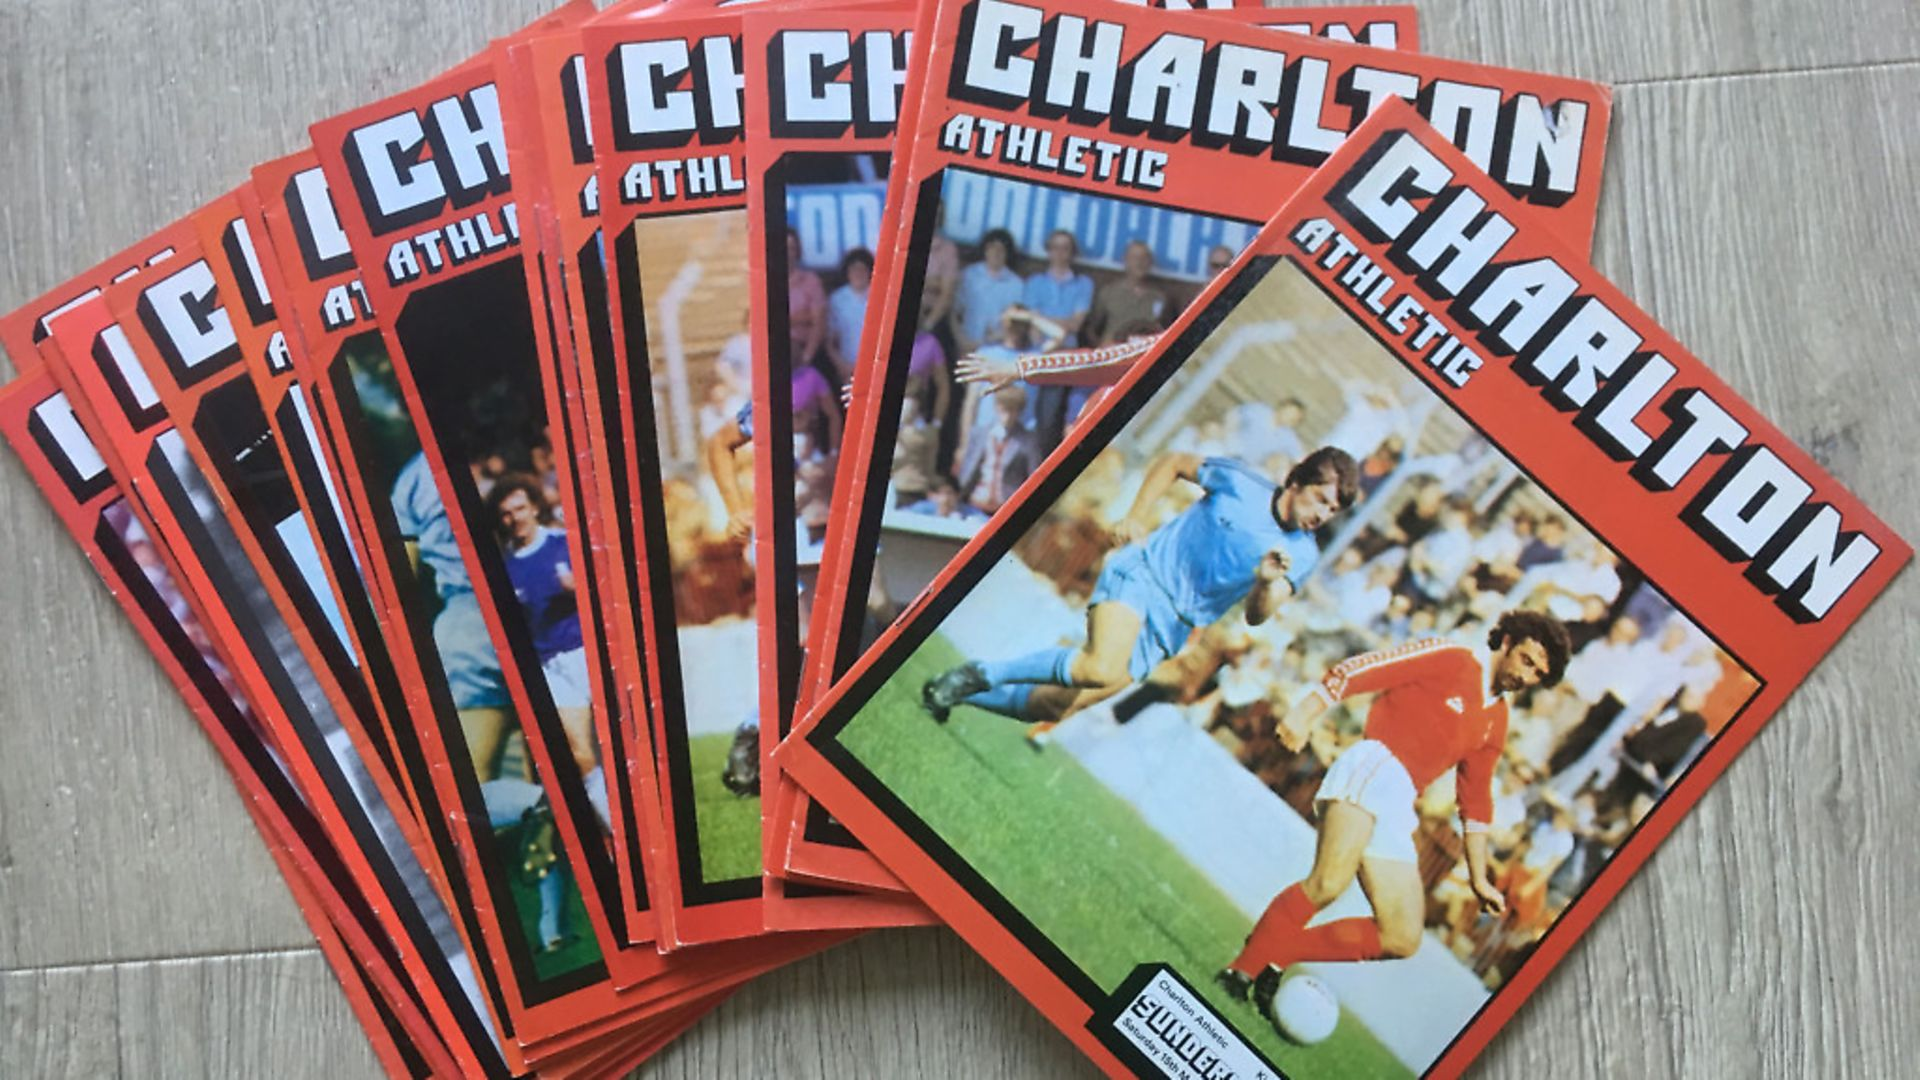 Charlton football magazines. Picture: Archant - Credit: Archant